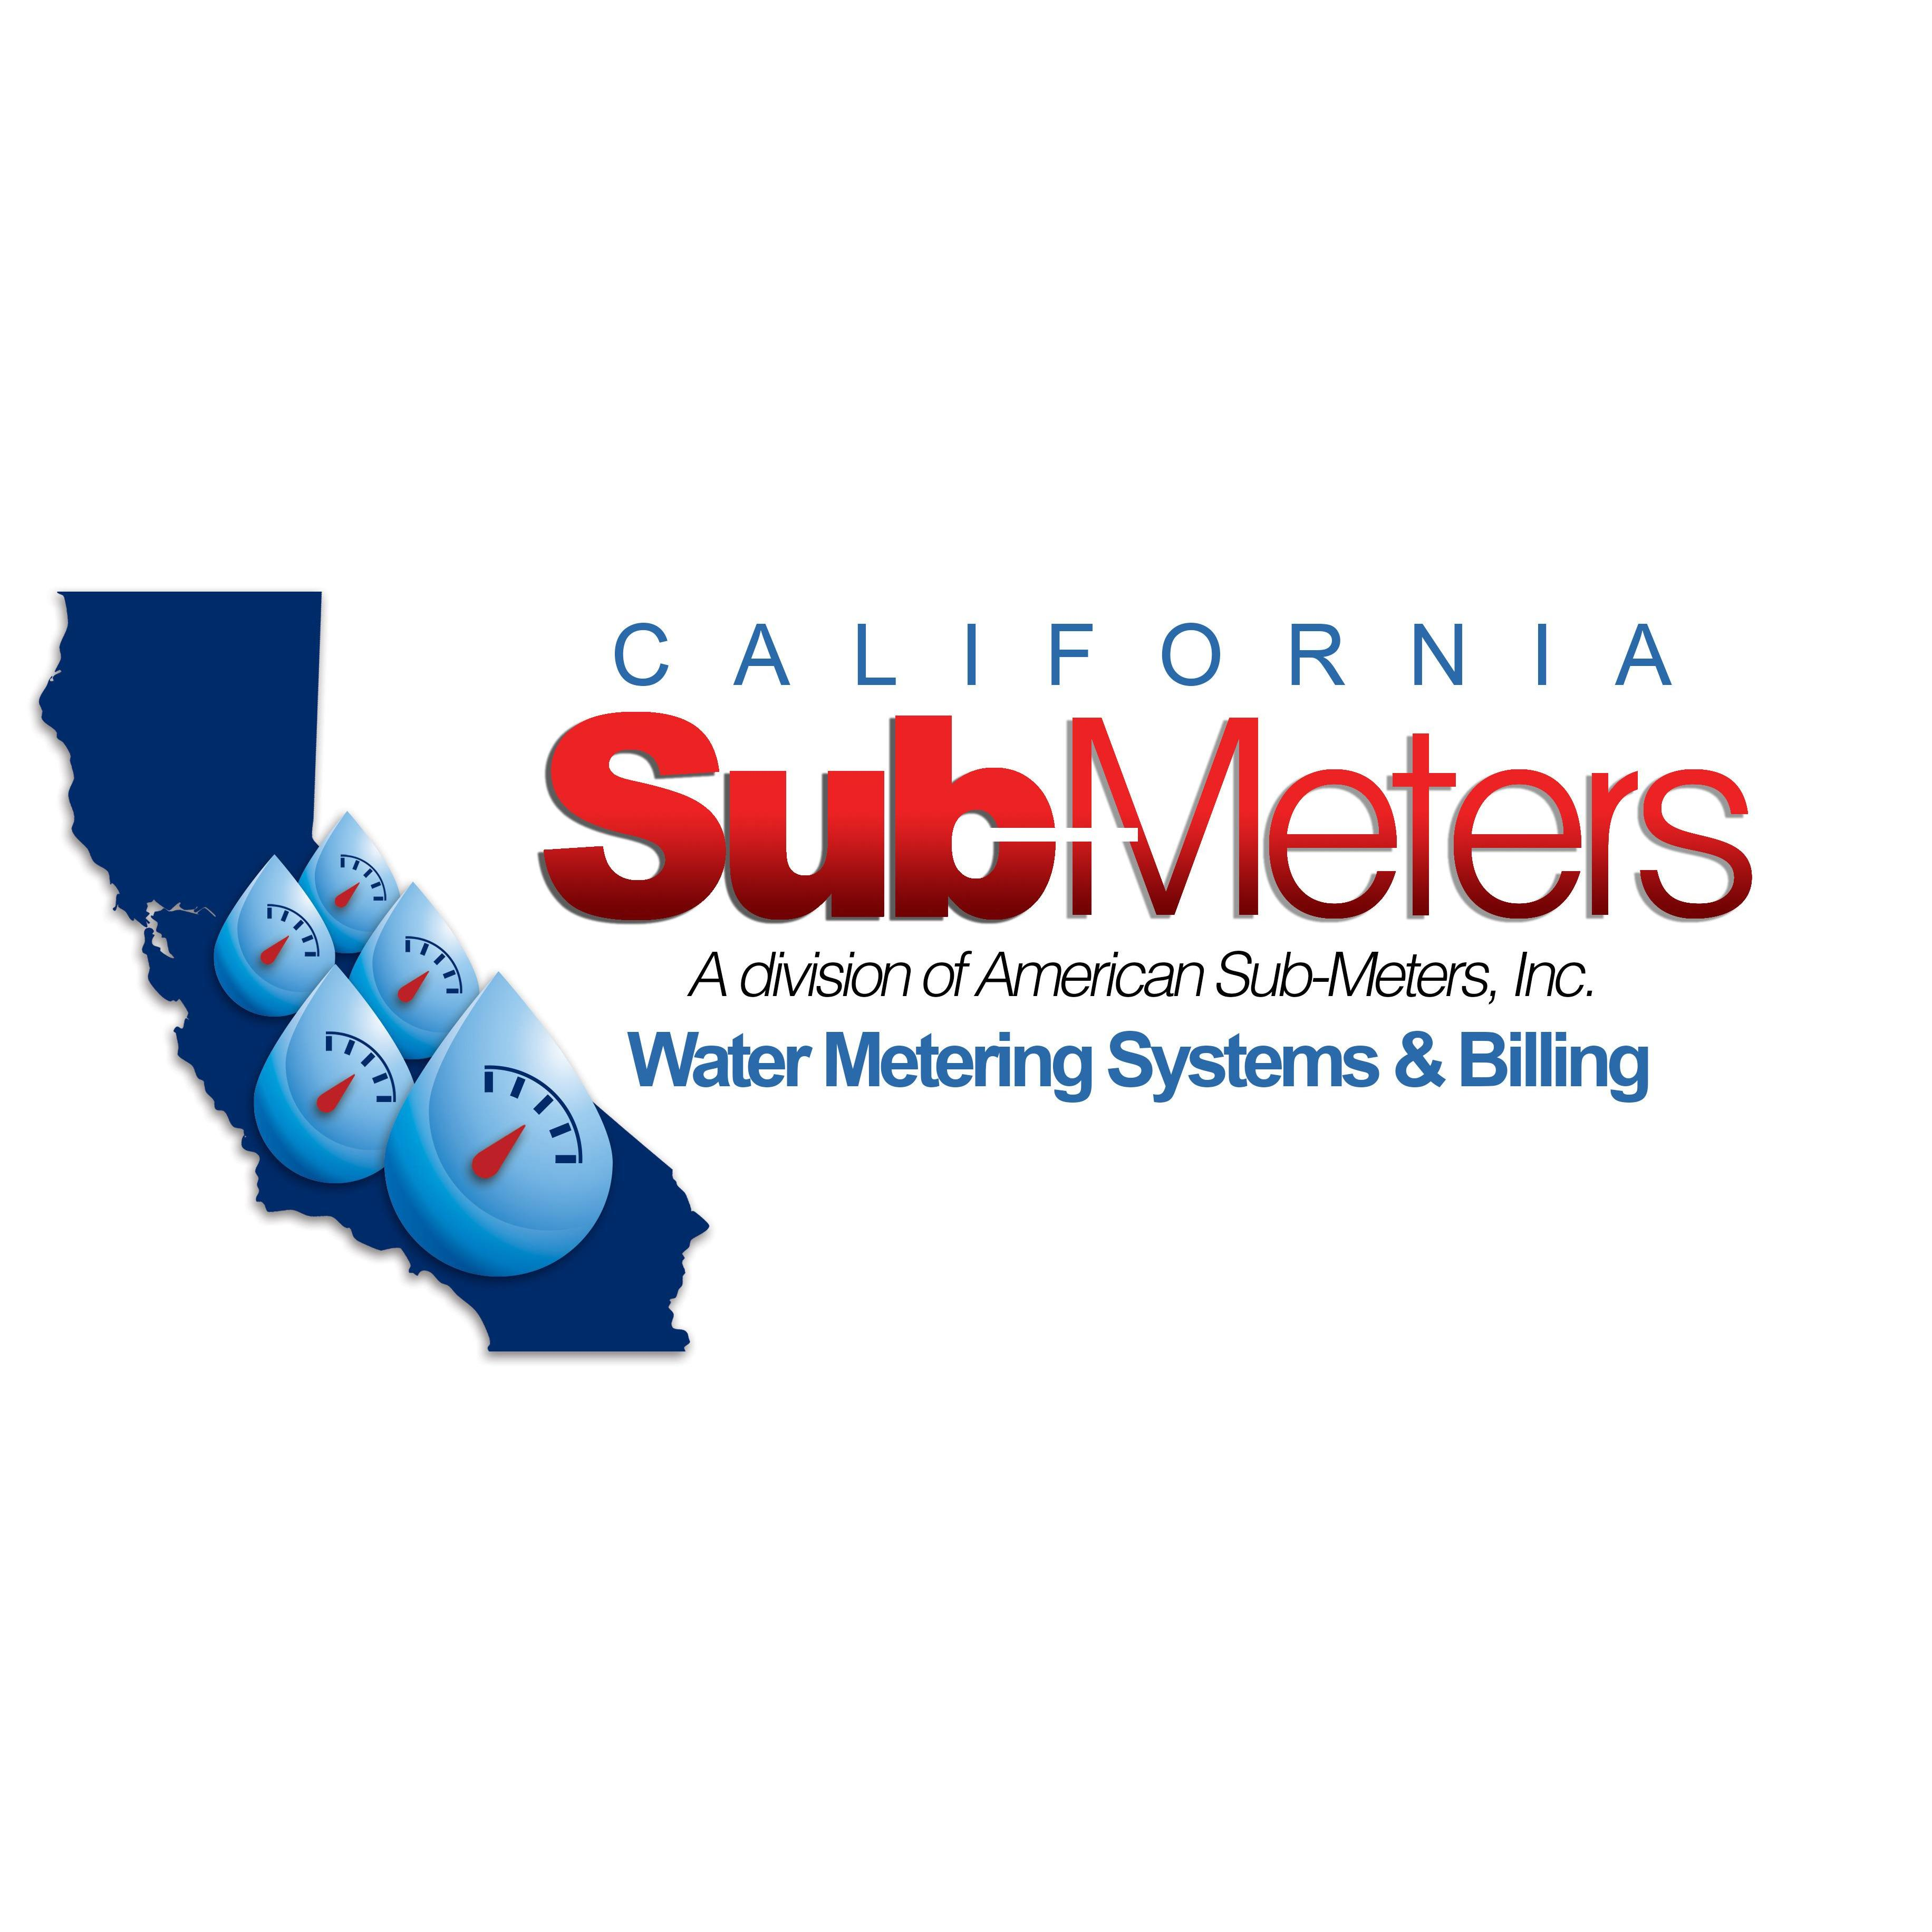 California Sub-Meters